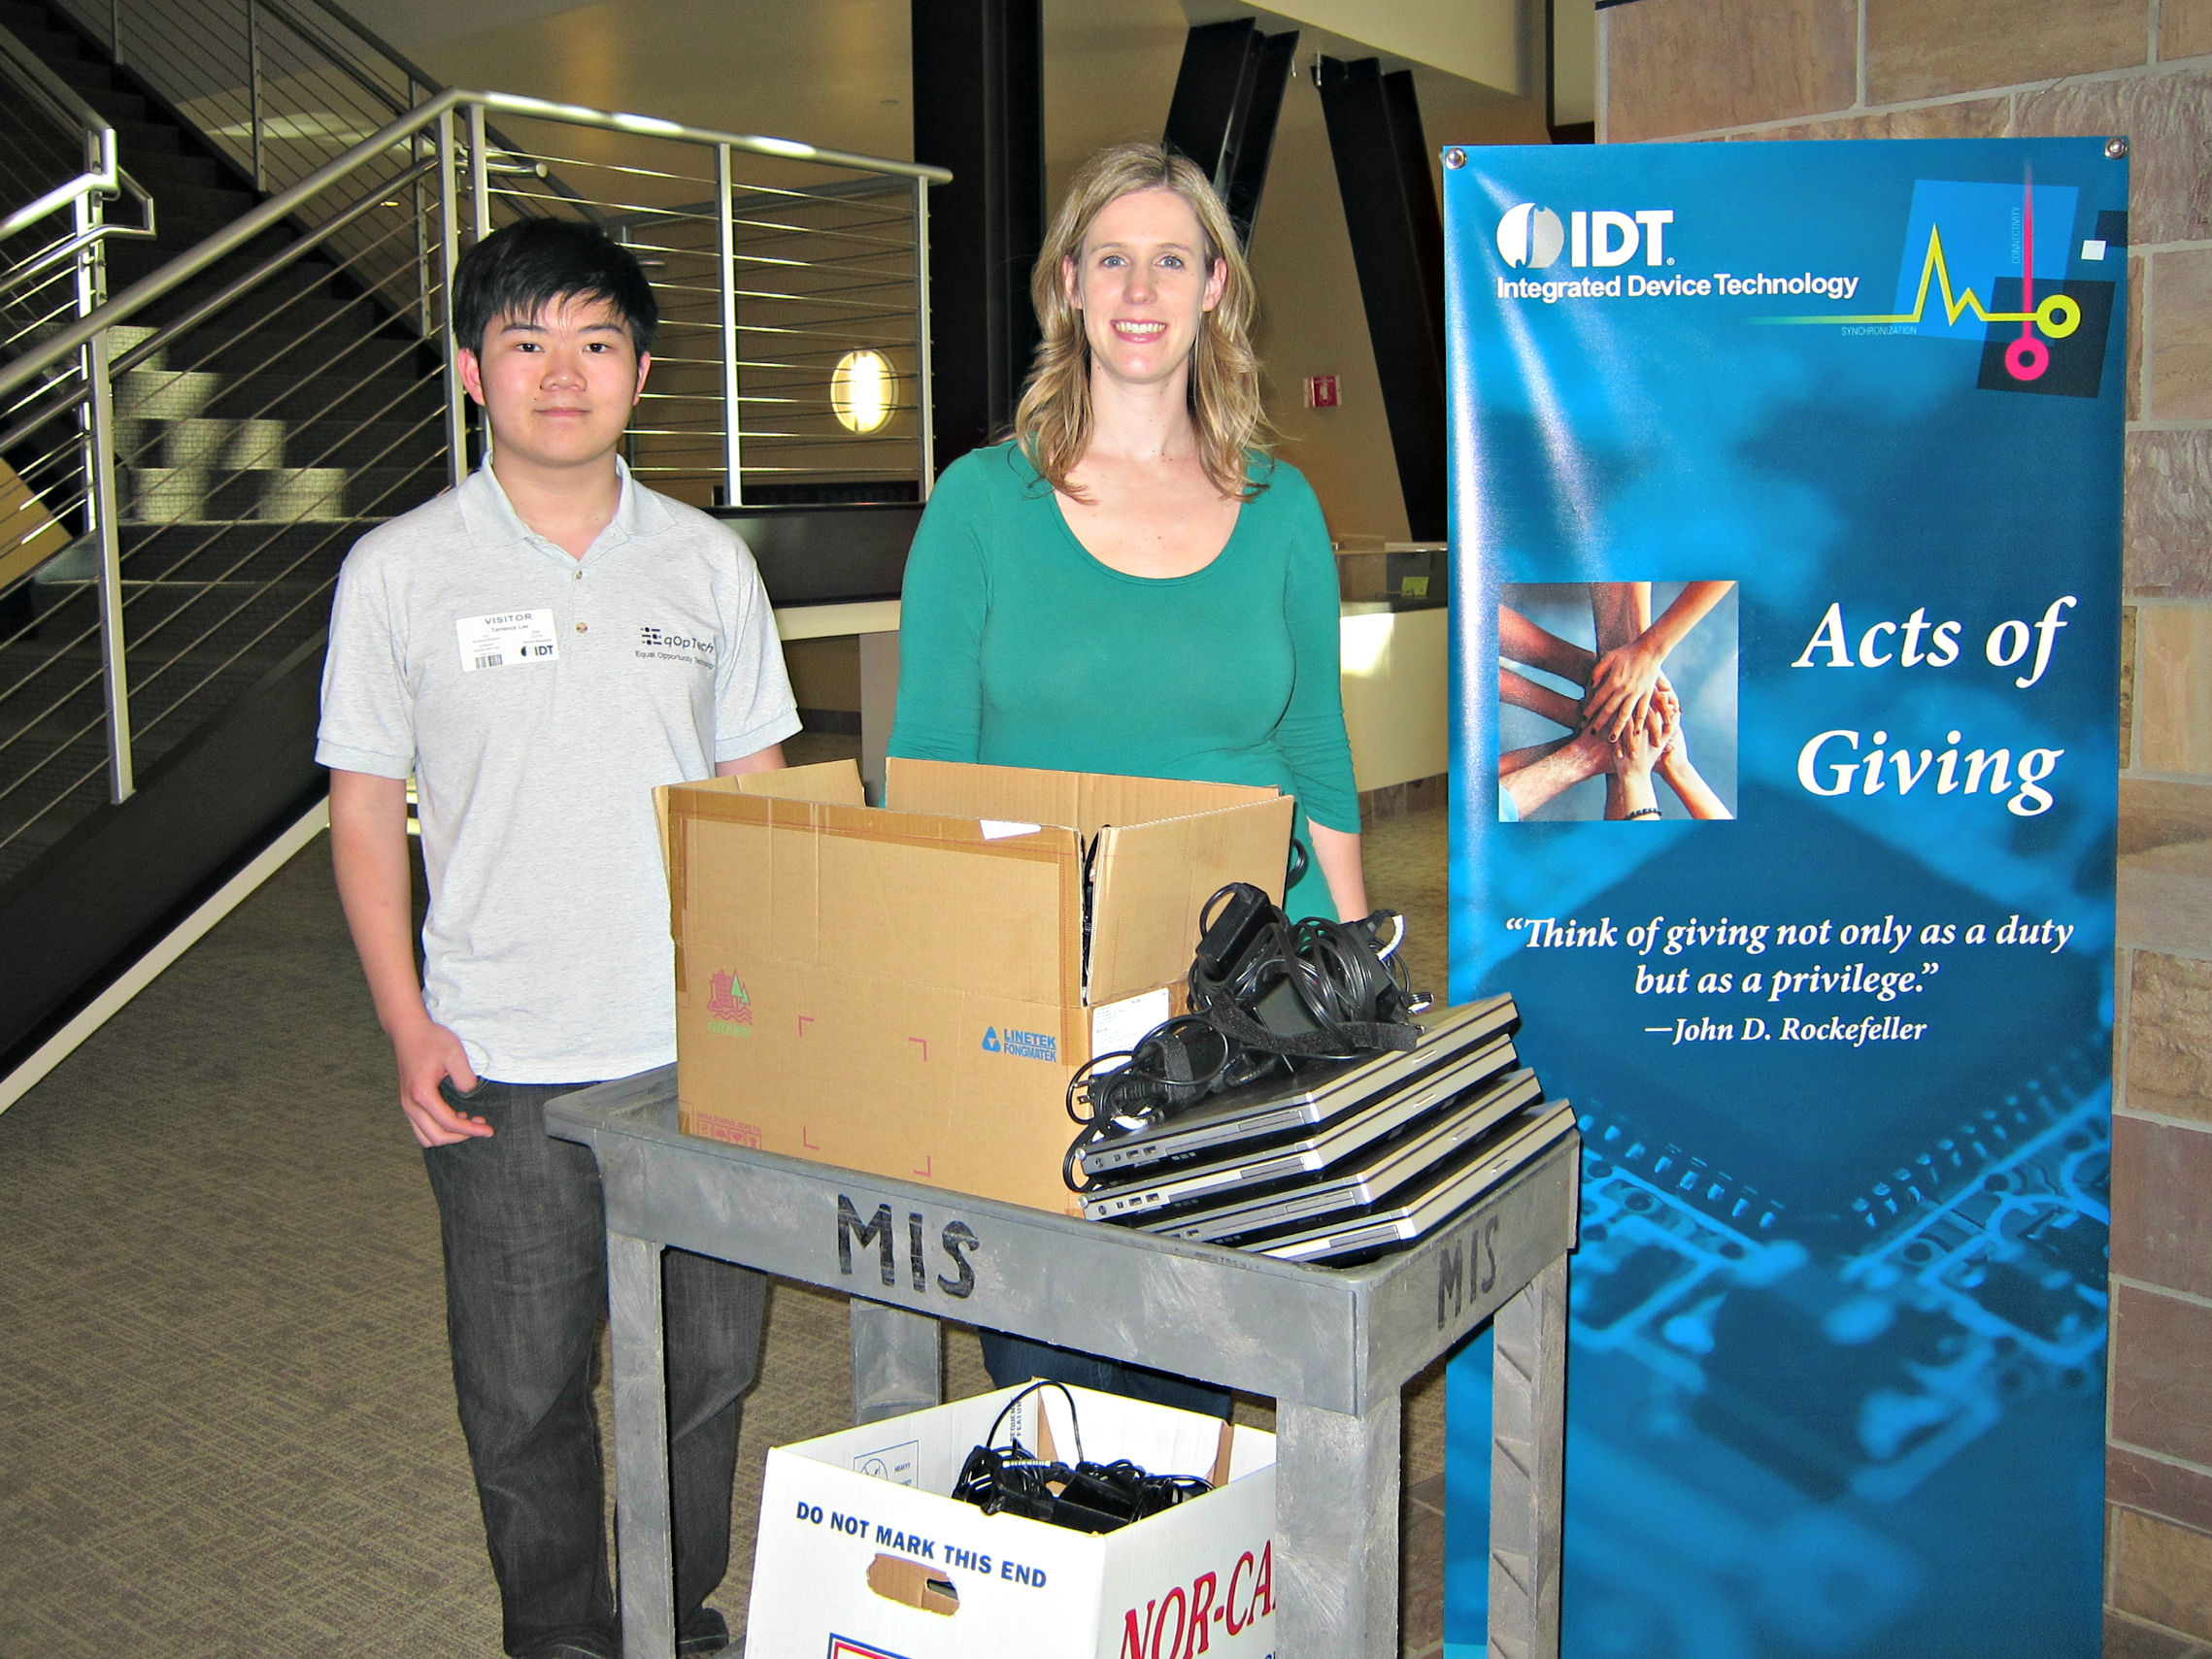 Kristina Bullock, IDT, Principal HR Business Partner and Manager of the IDT Acts of Giving Program (right) and Terence Lee, EqOpTech Founder